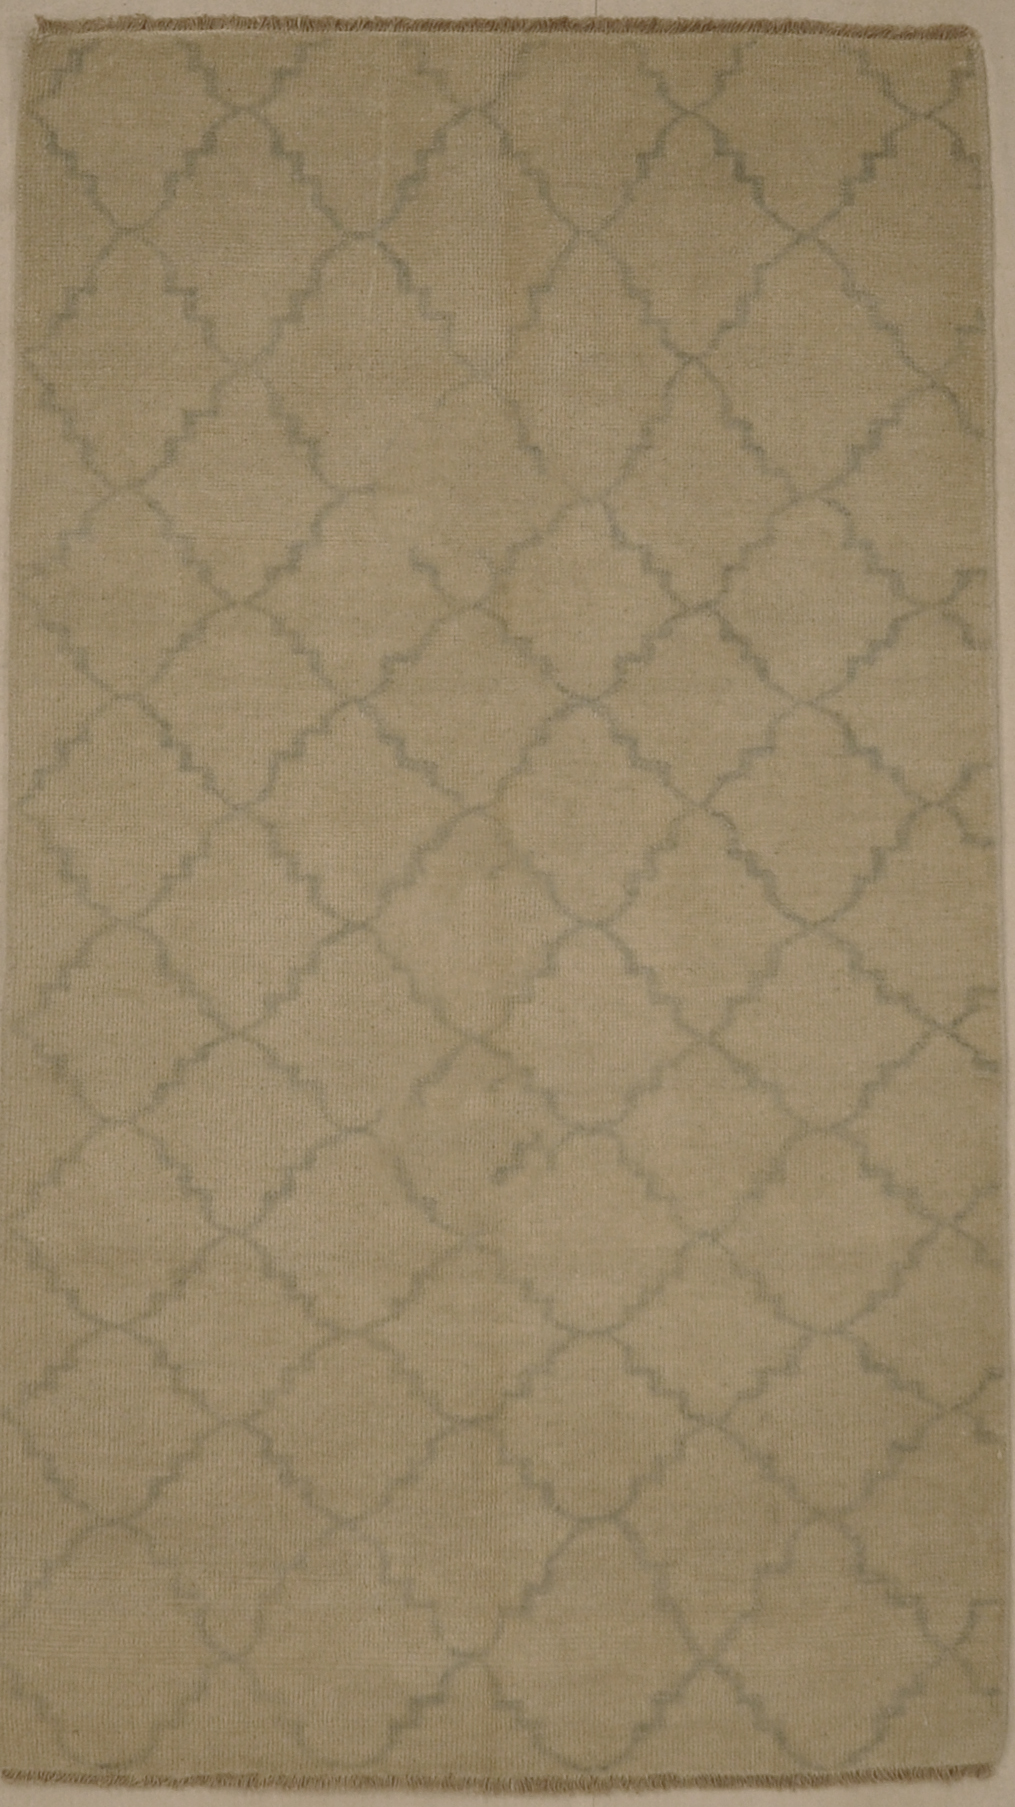 Blue and Beige Fine Modern Trellised Rug. A piece of genuine woven carpet art sold by the Santa Barbara Design Company, Rugs and More.